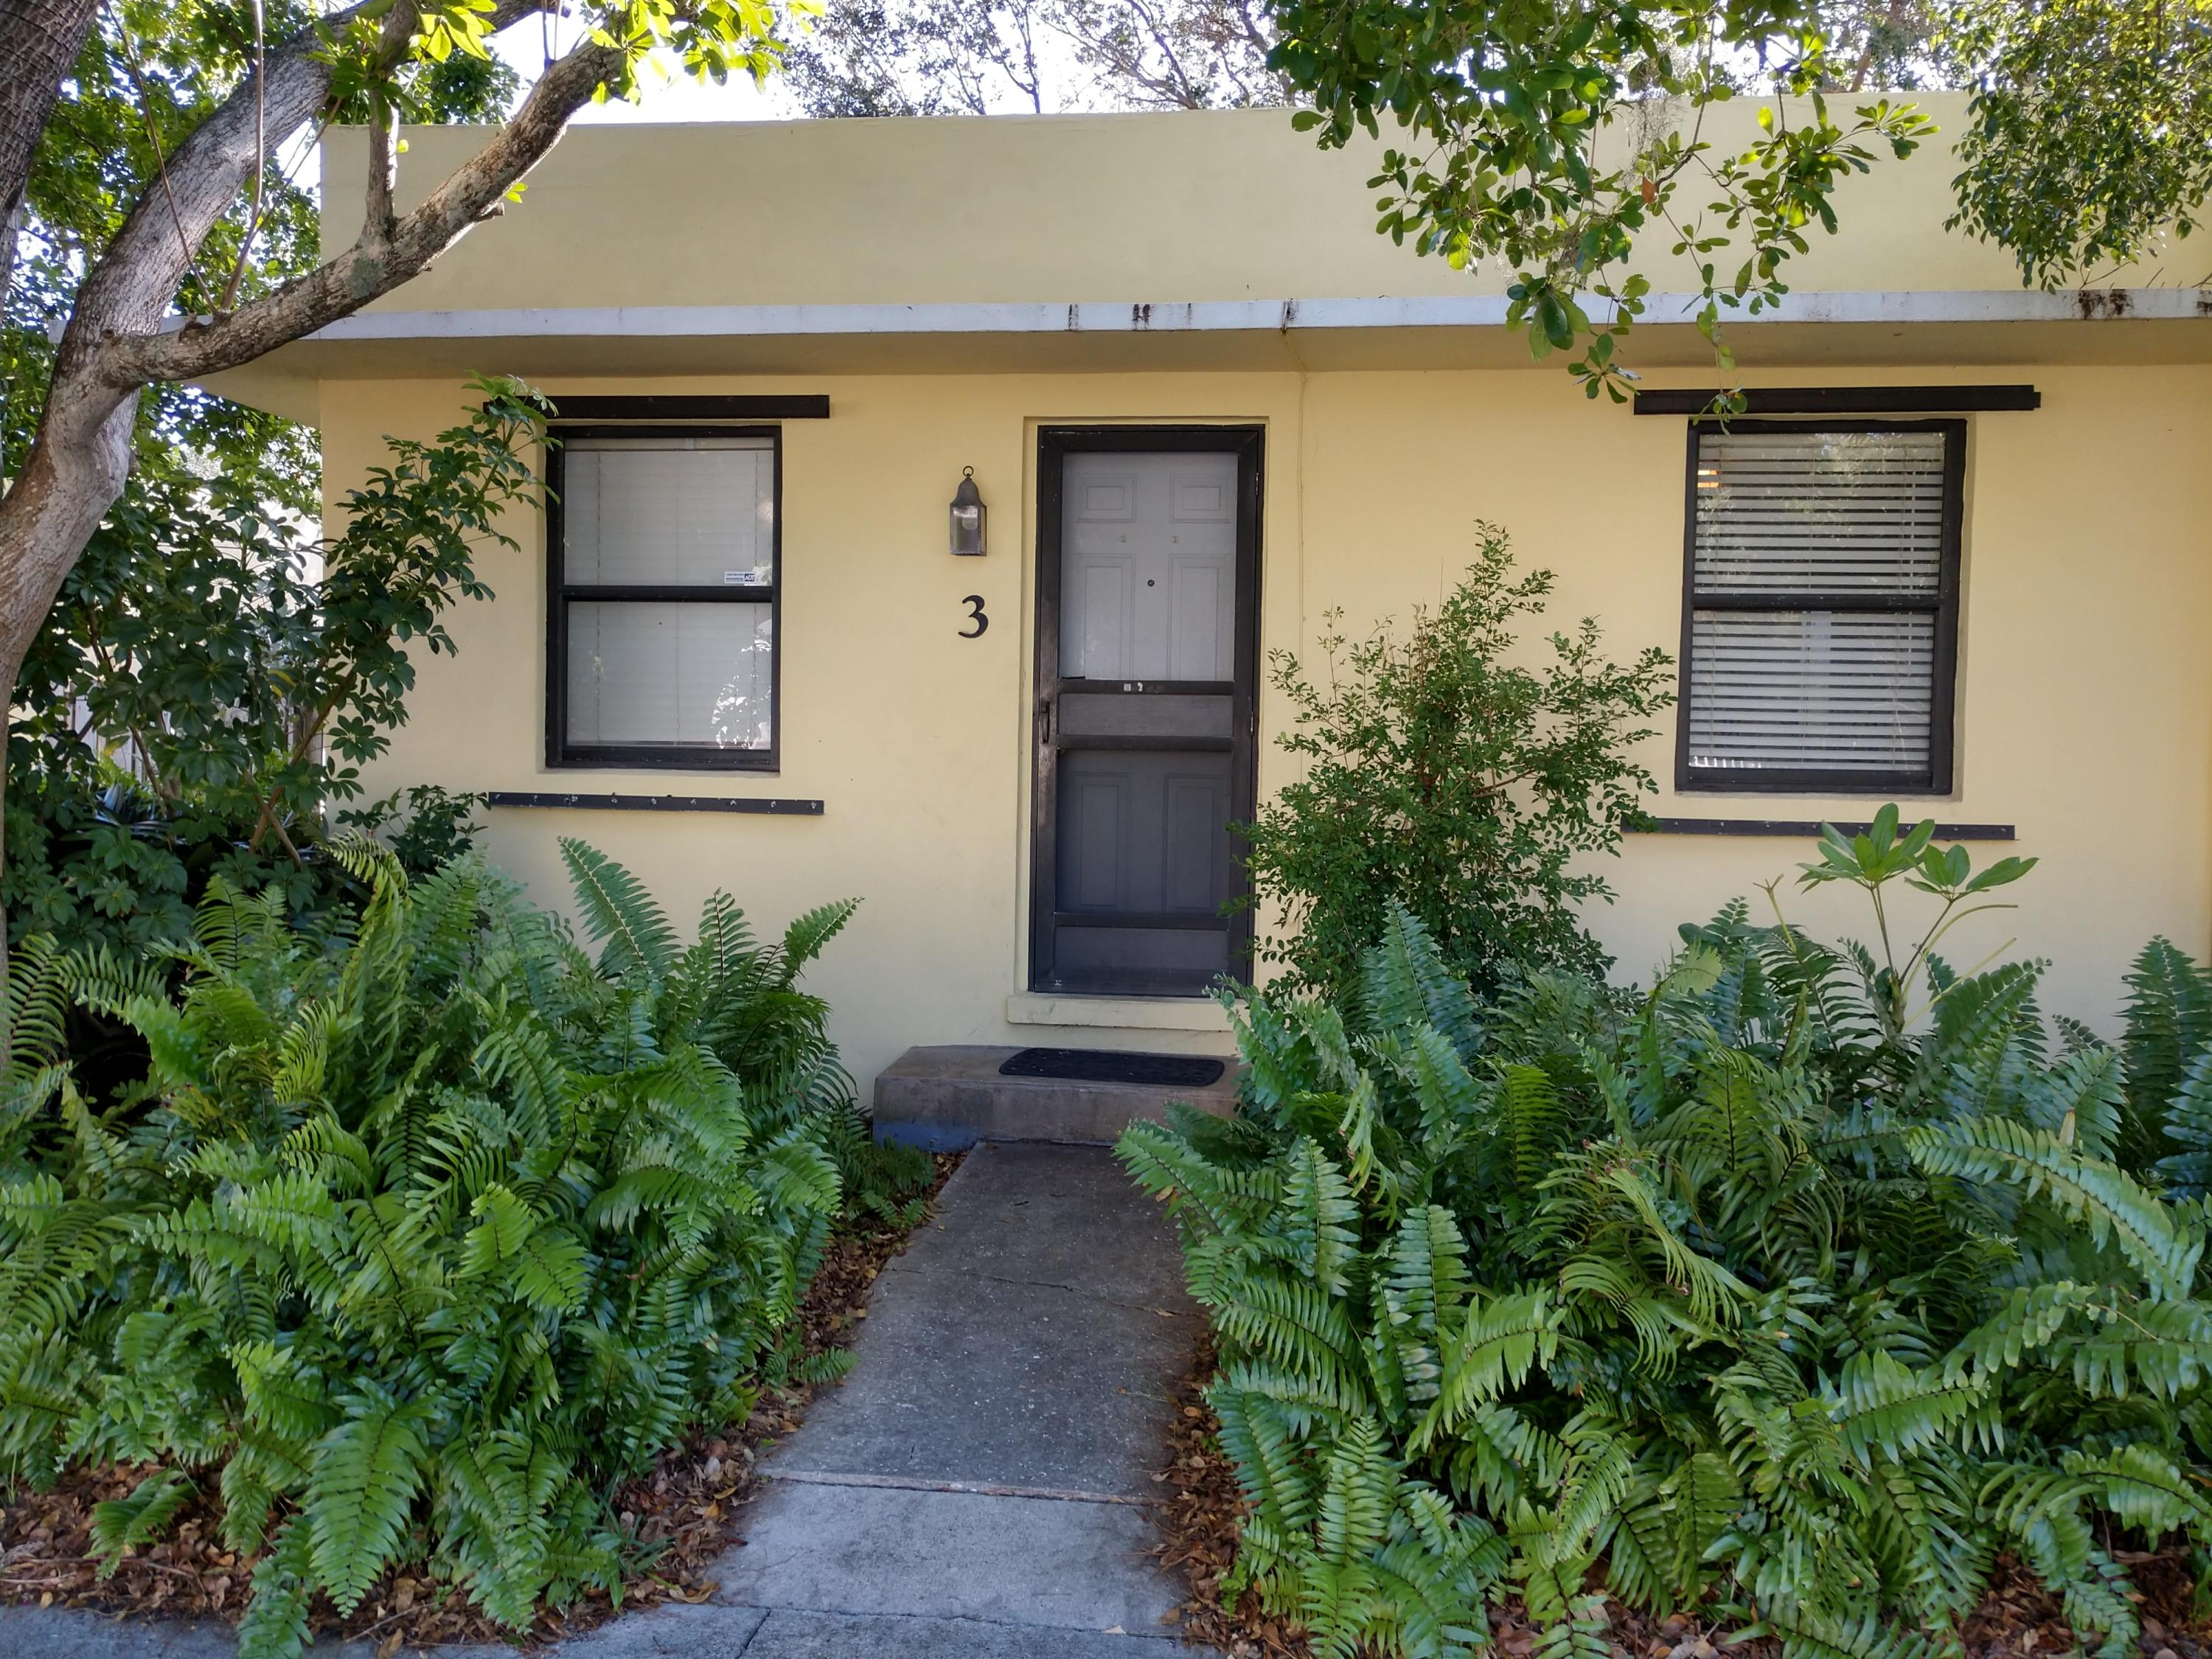 1130 Federal Highway, Lake Worth, Florida 33460, 1 Bedroom Bedrooms, ,1 BathroomBathrooms,Duplex/Triplex/Quadplex,For Rent,Federal,1,RX-10552213